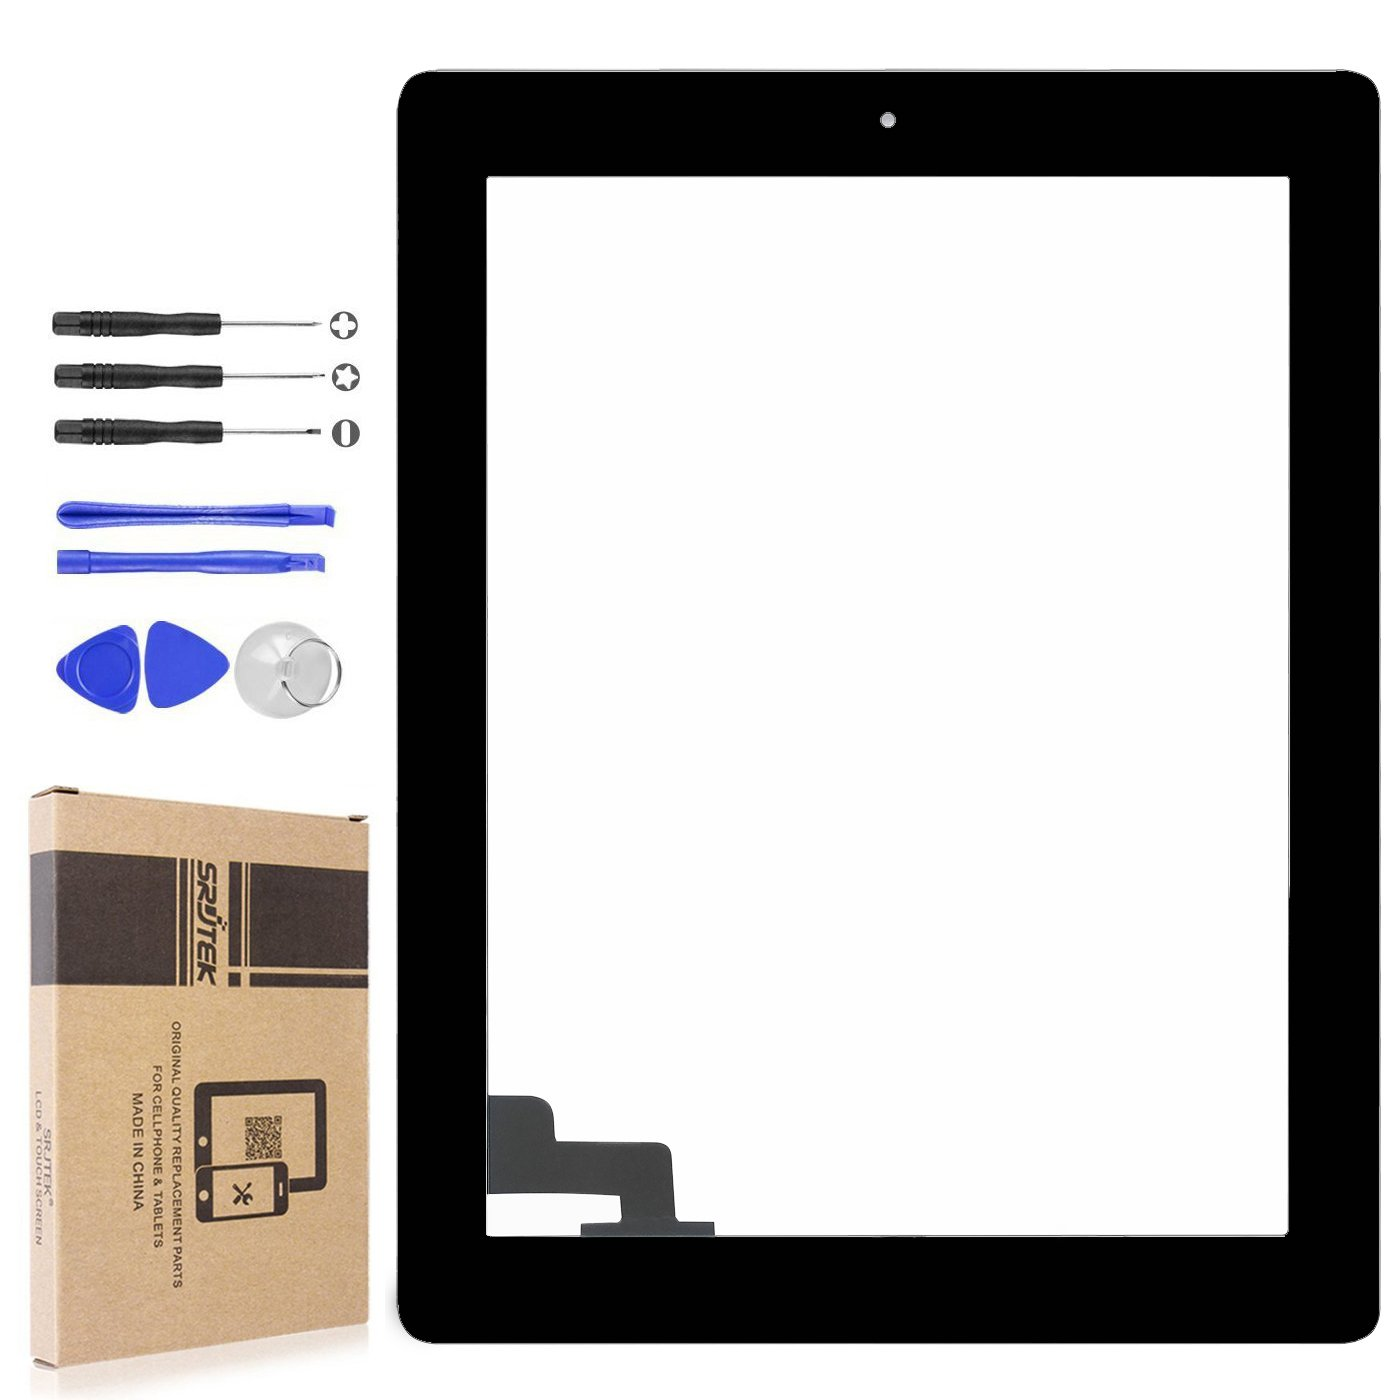 srjtek Touch Screen Digitizer for IPad 2 A1397 A1395 A1396,Replacement Parts Home Button + Cameral Holder + Pre-installed Adhesive + Middle Frame Bezel,Professional Tools Include(Black)